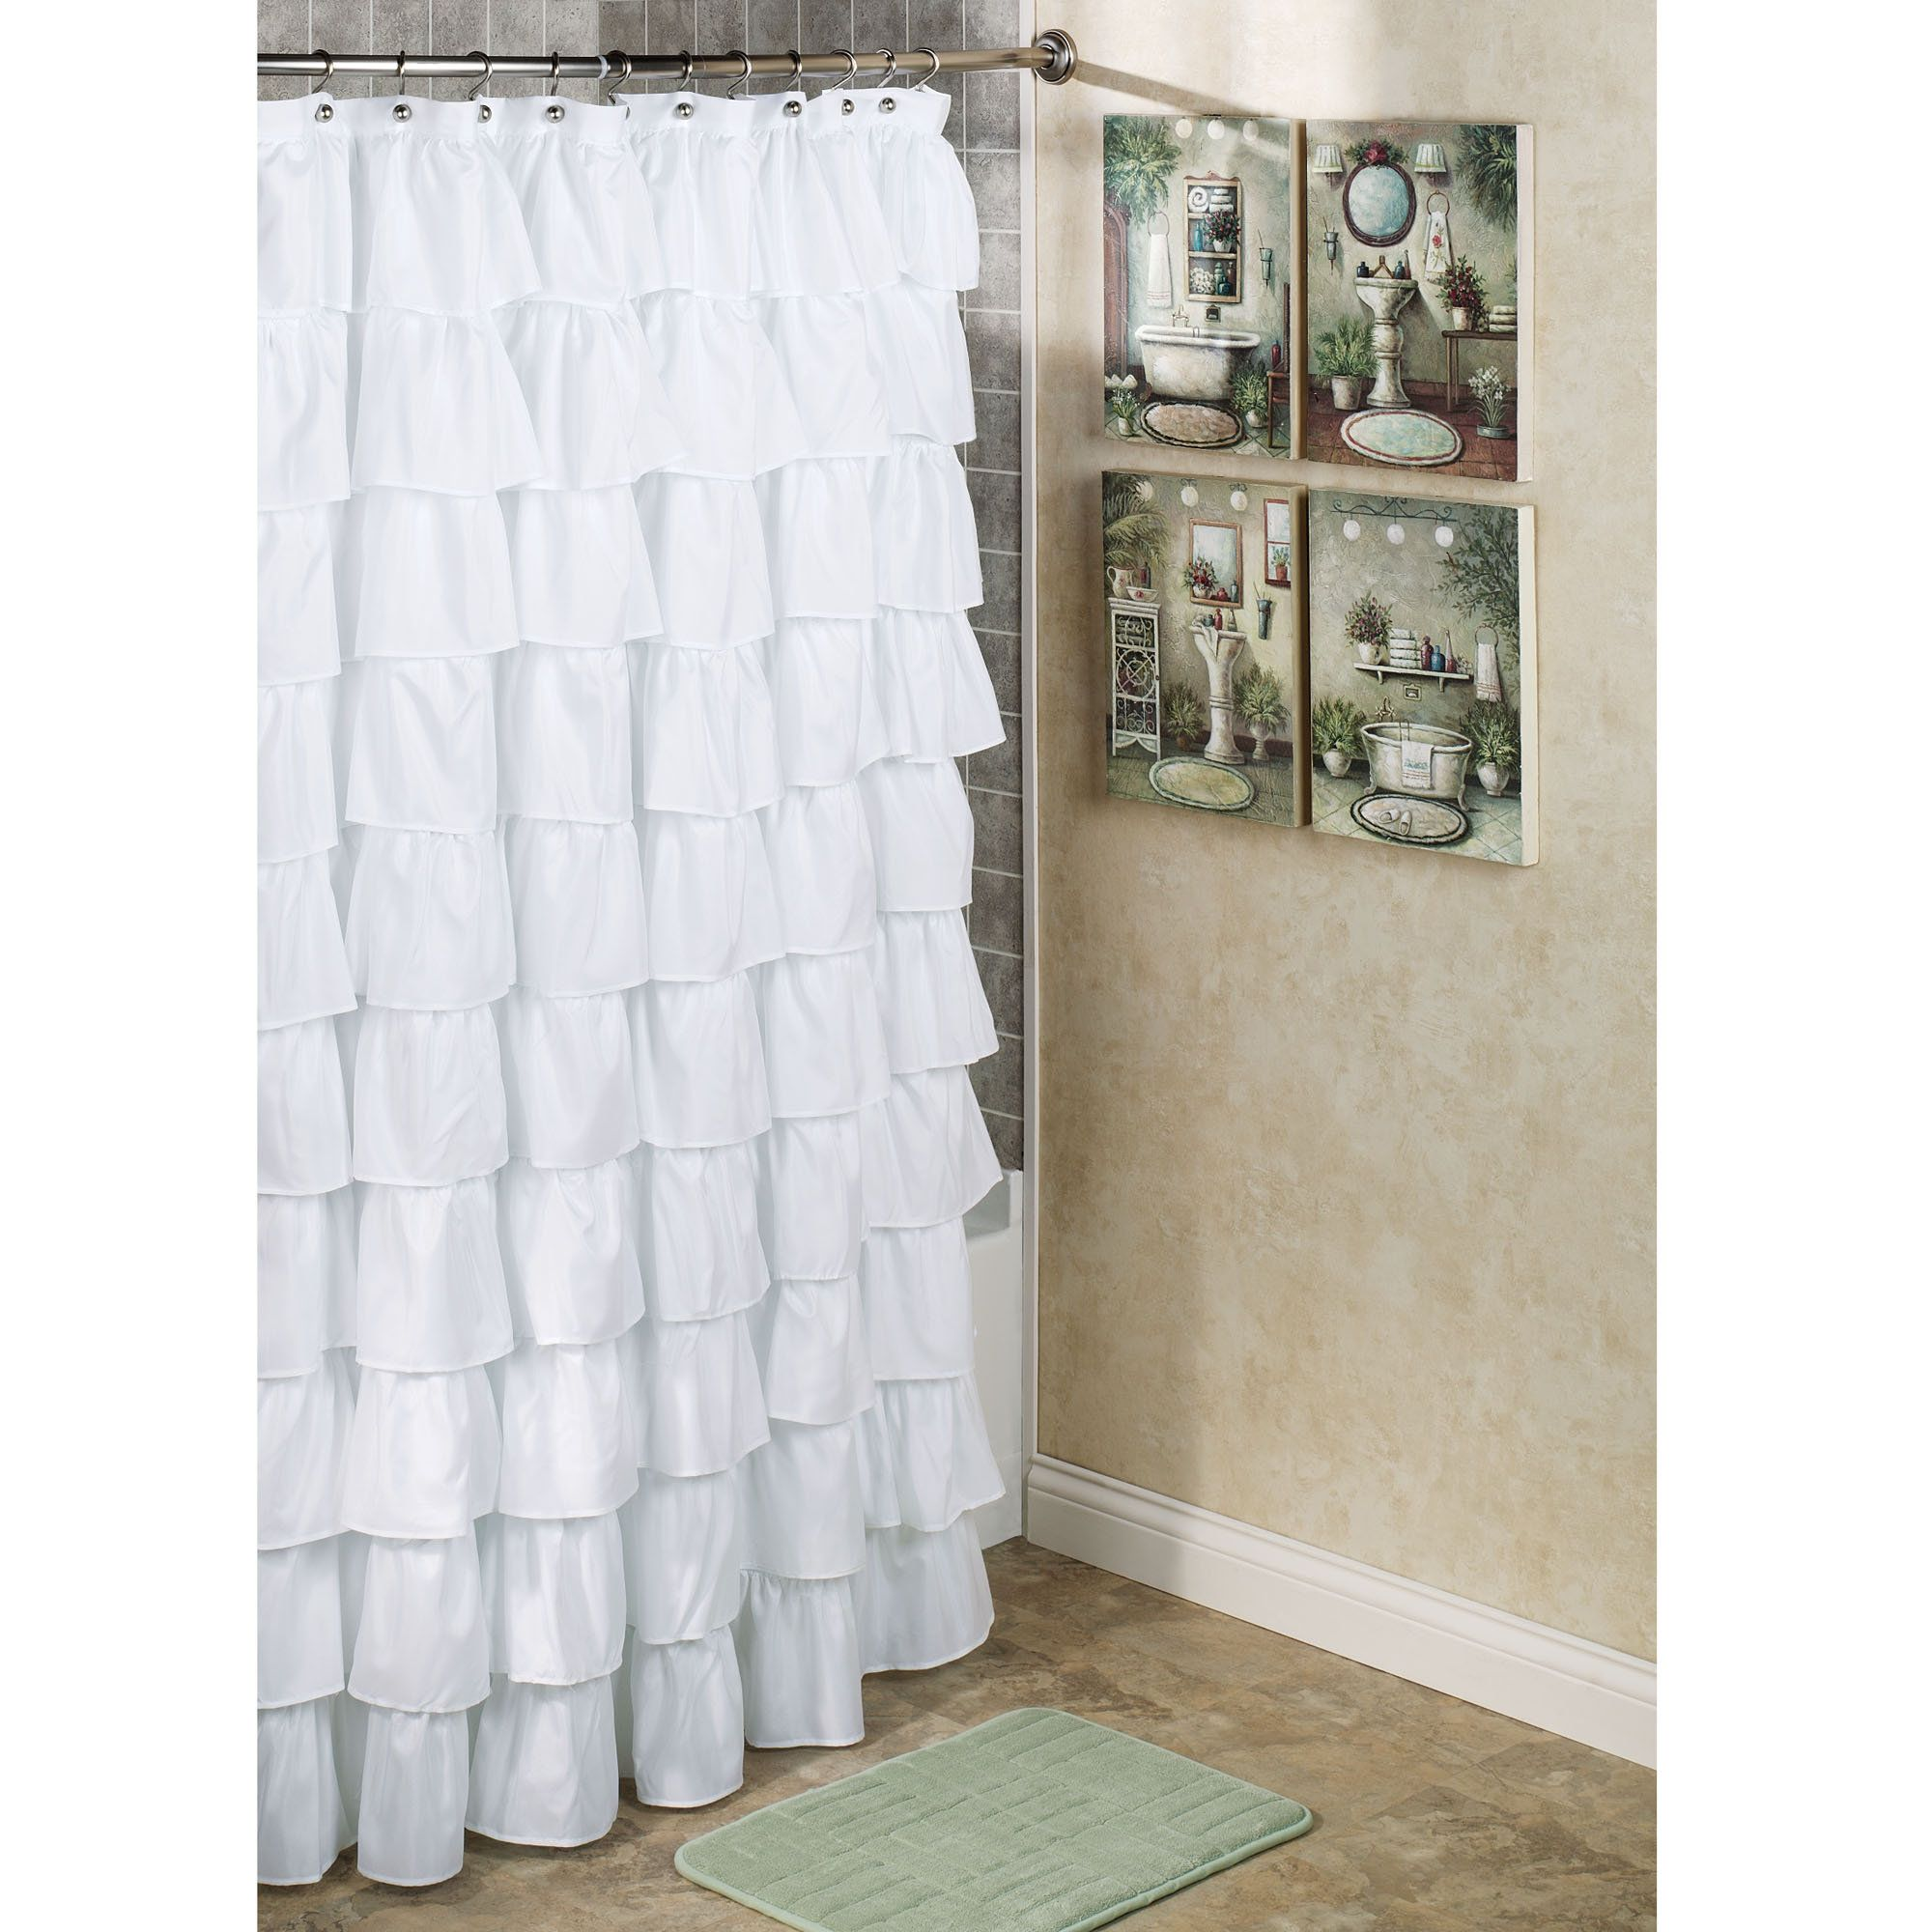 Extra Long Shower Curtain Australia Extra Long Shower Curtains Kohls Flisol Home